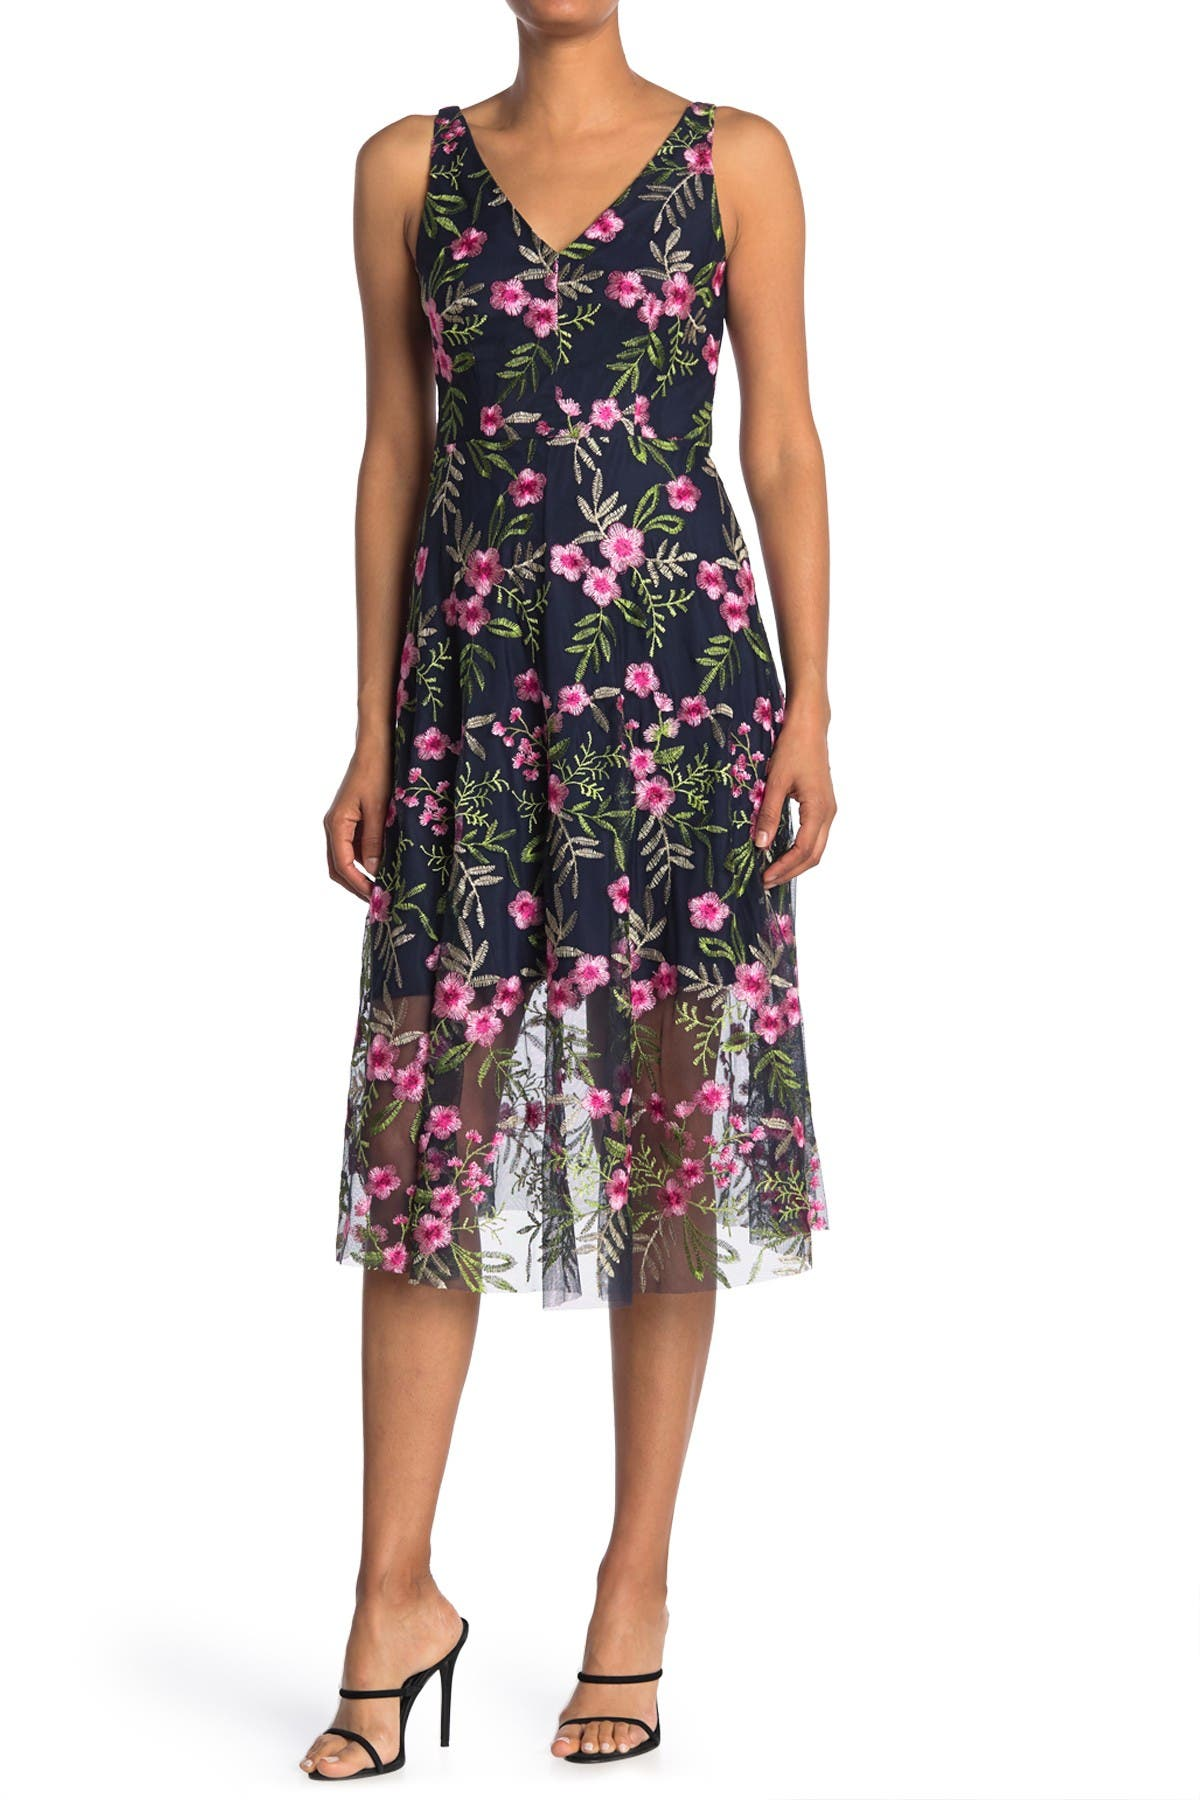 Image of Vince Camuto Floral Embroidered V-Neck Sleeveless Midi Dress